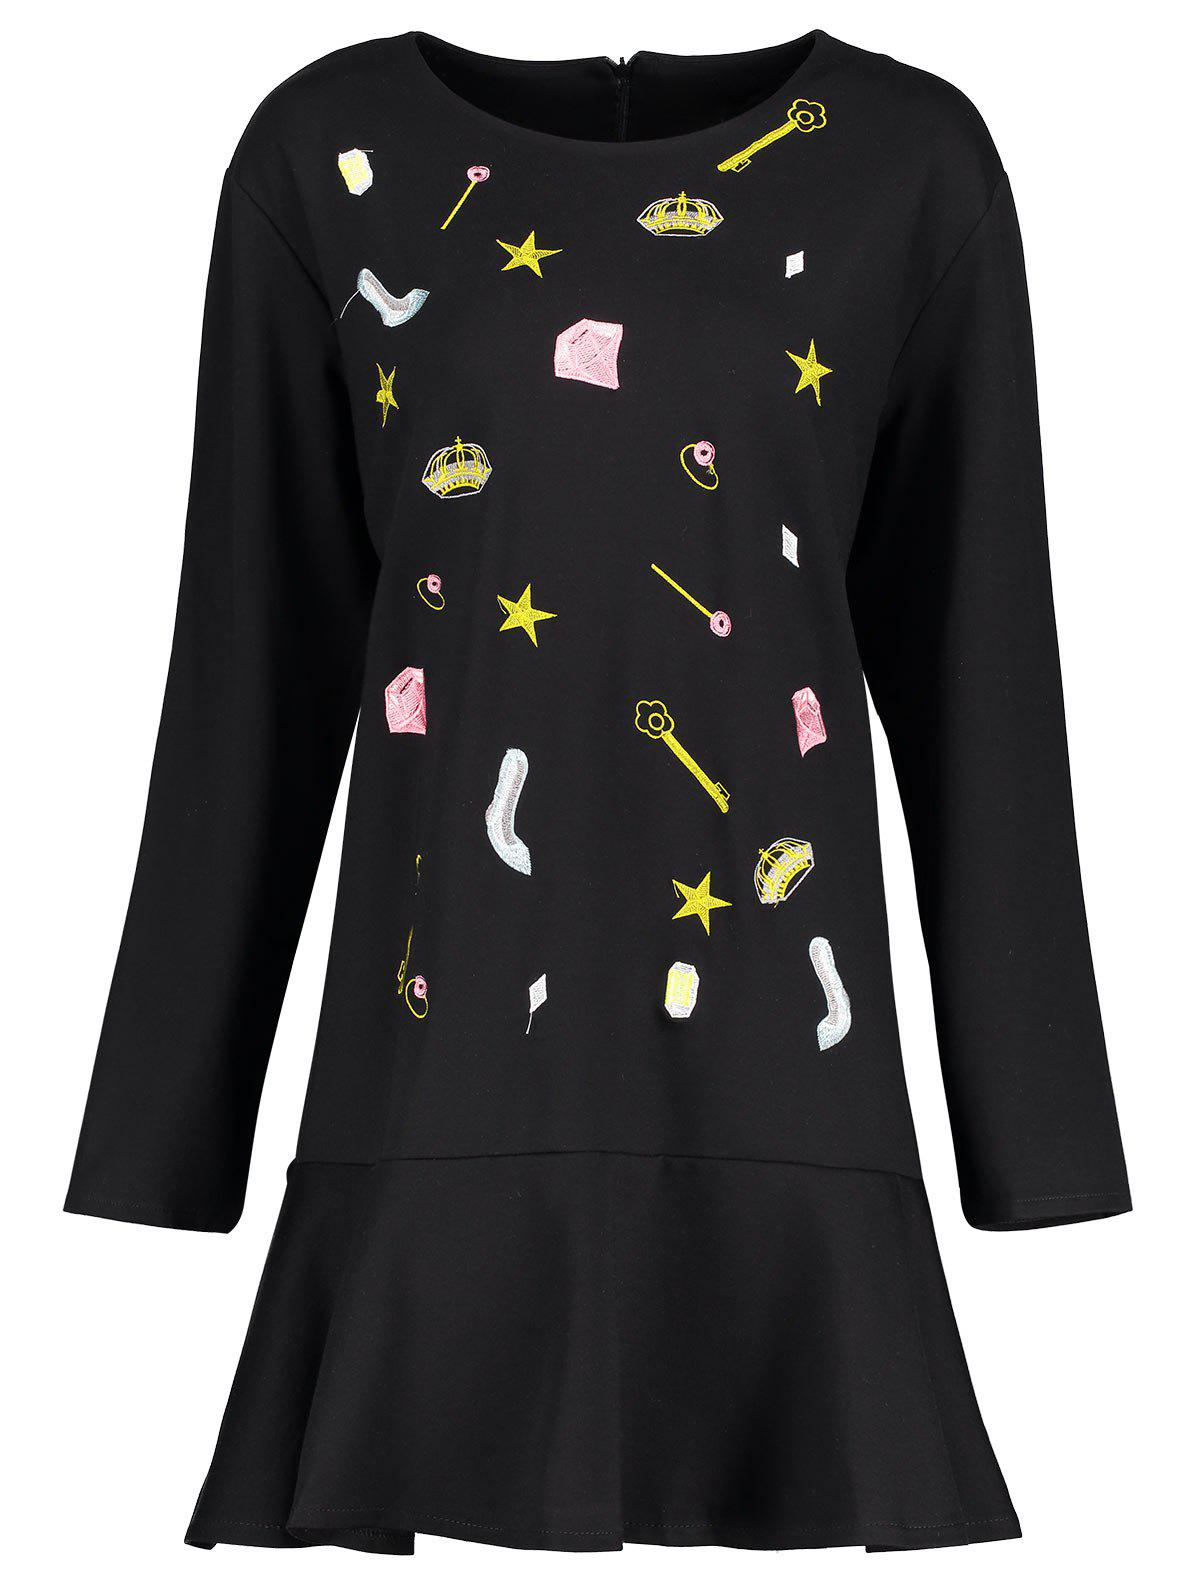 Plus Size Cute Embroidered Drop Waist Dress - BLACK 3XL